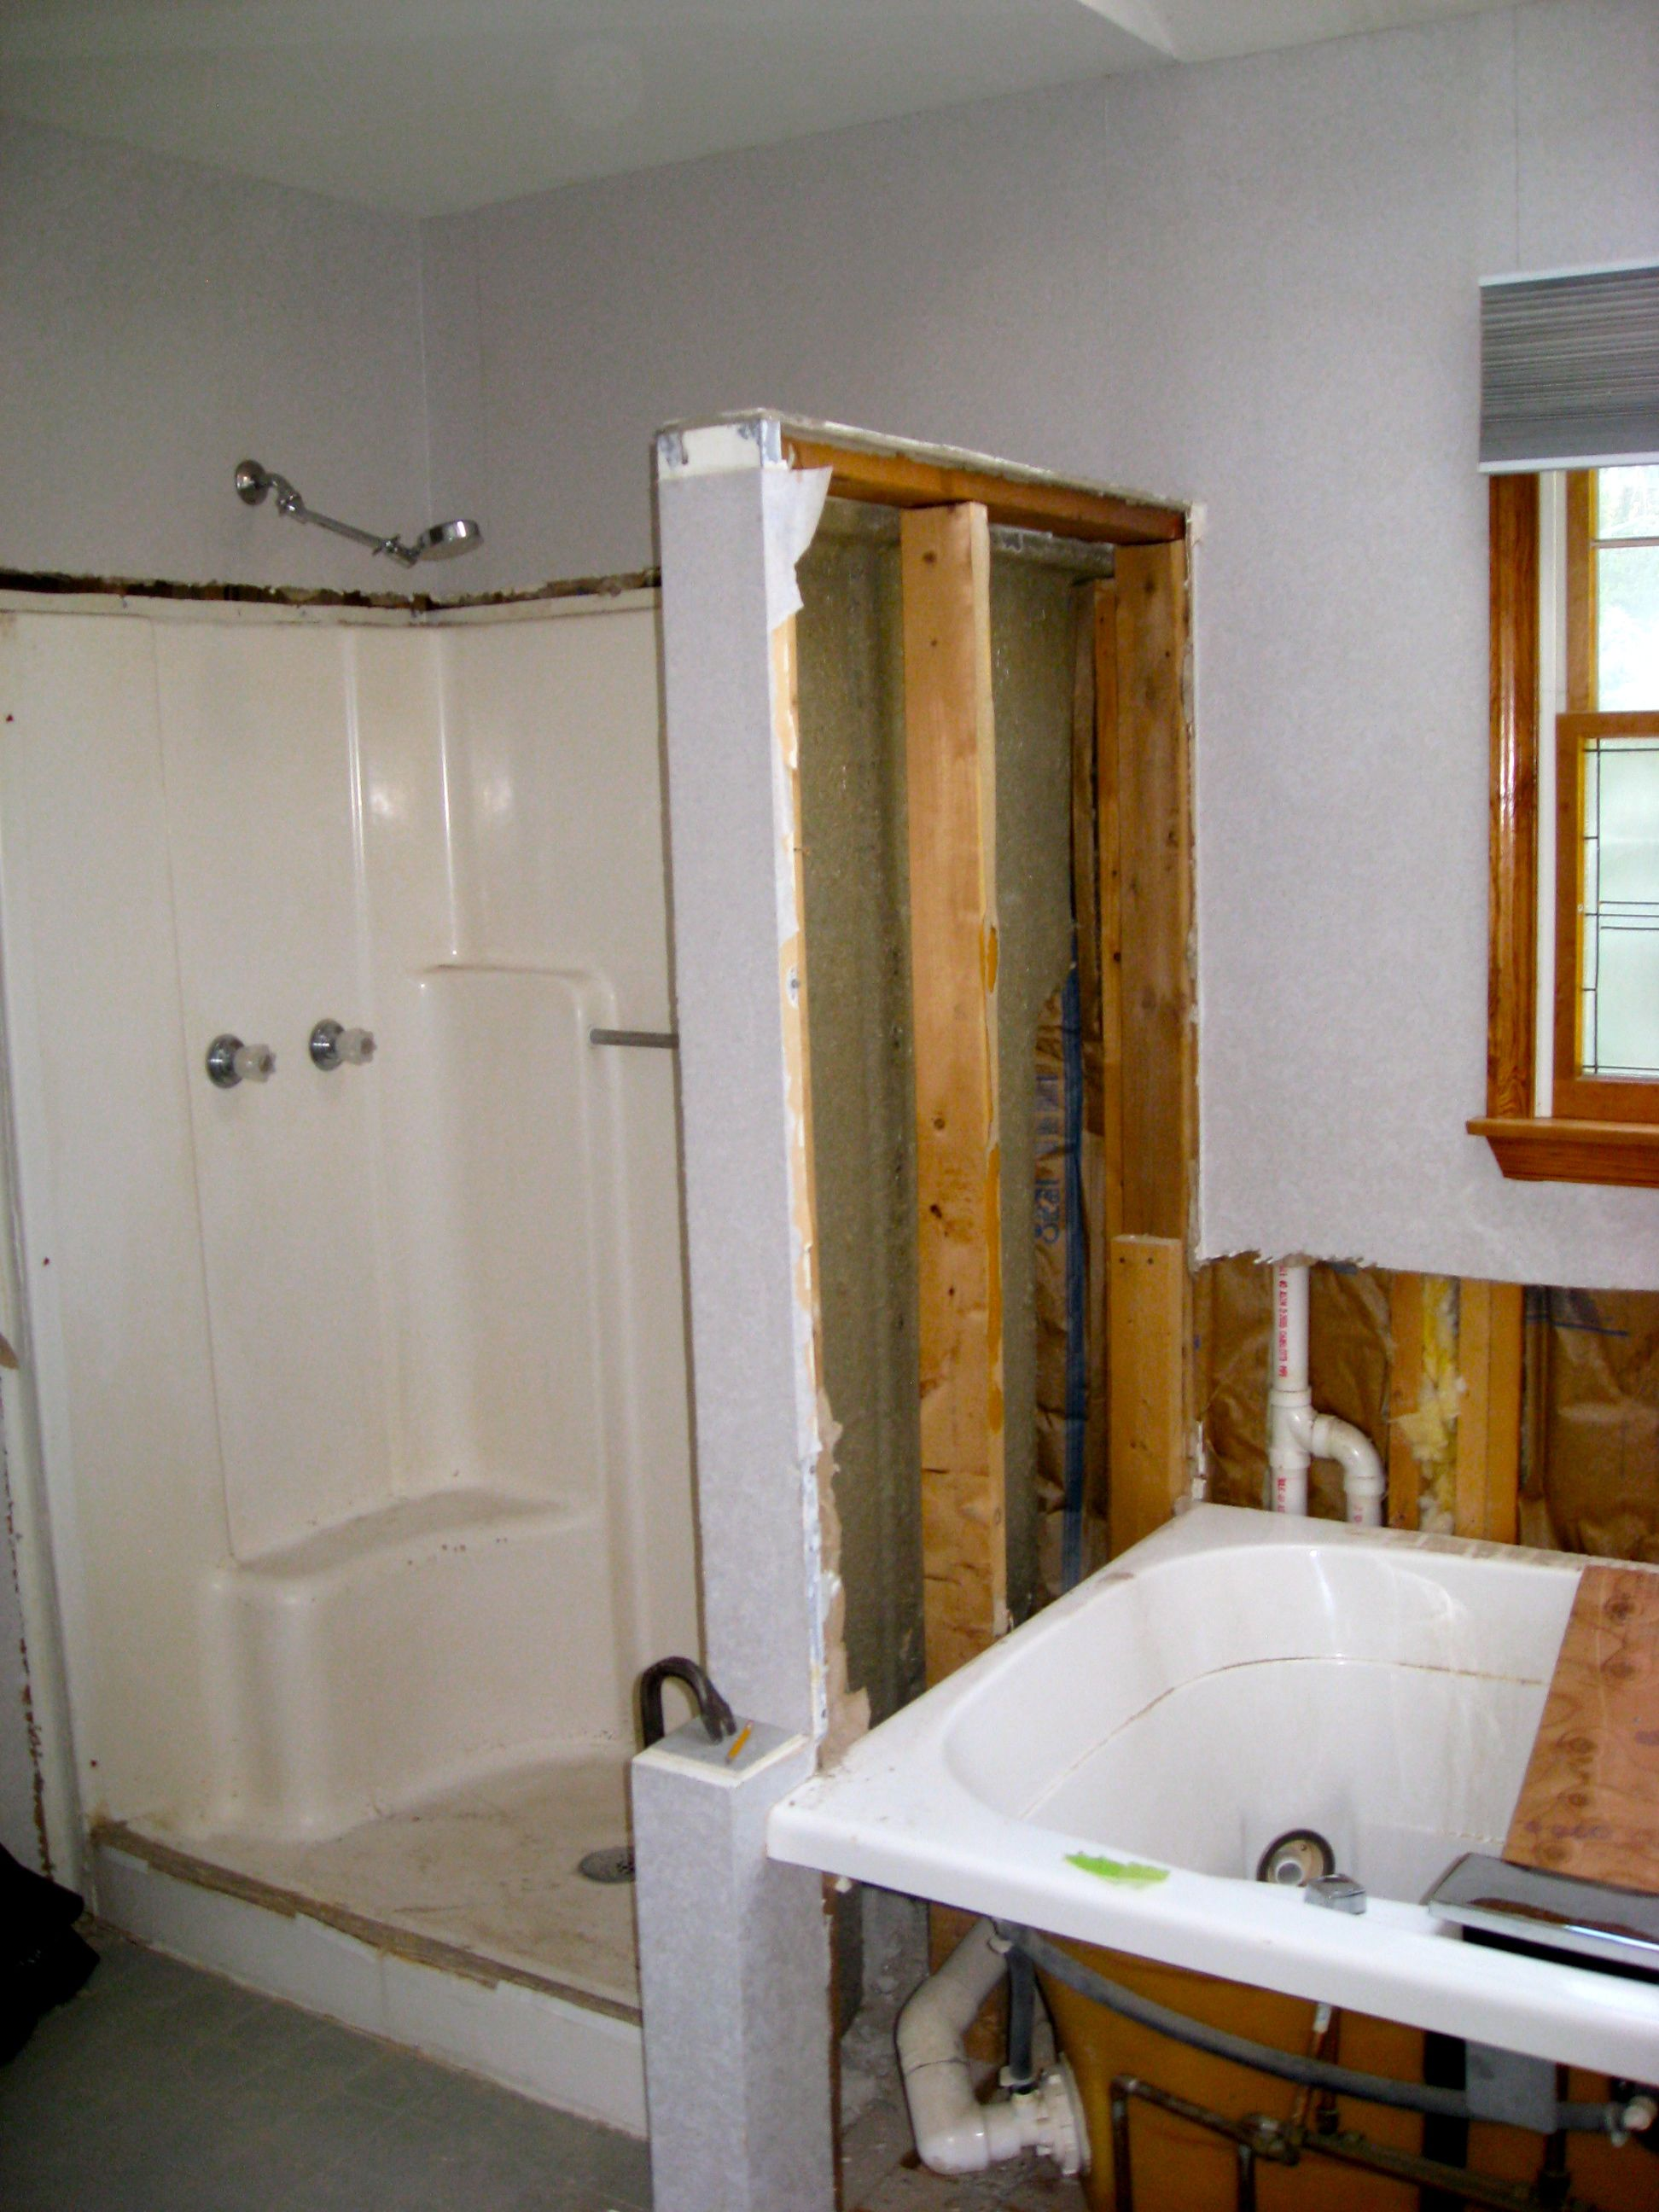 Start Of Demolition Had Existing Fiberglass Shower Surround And Garden Tub Which Was Eliminated